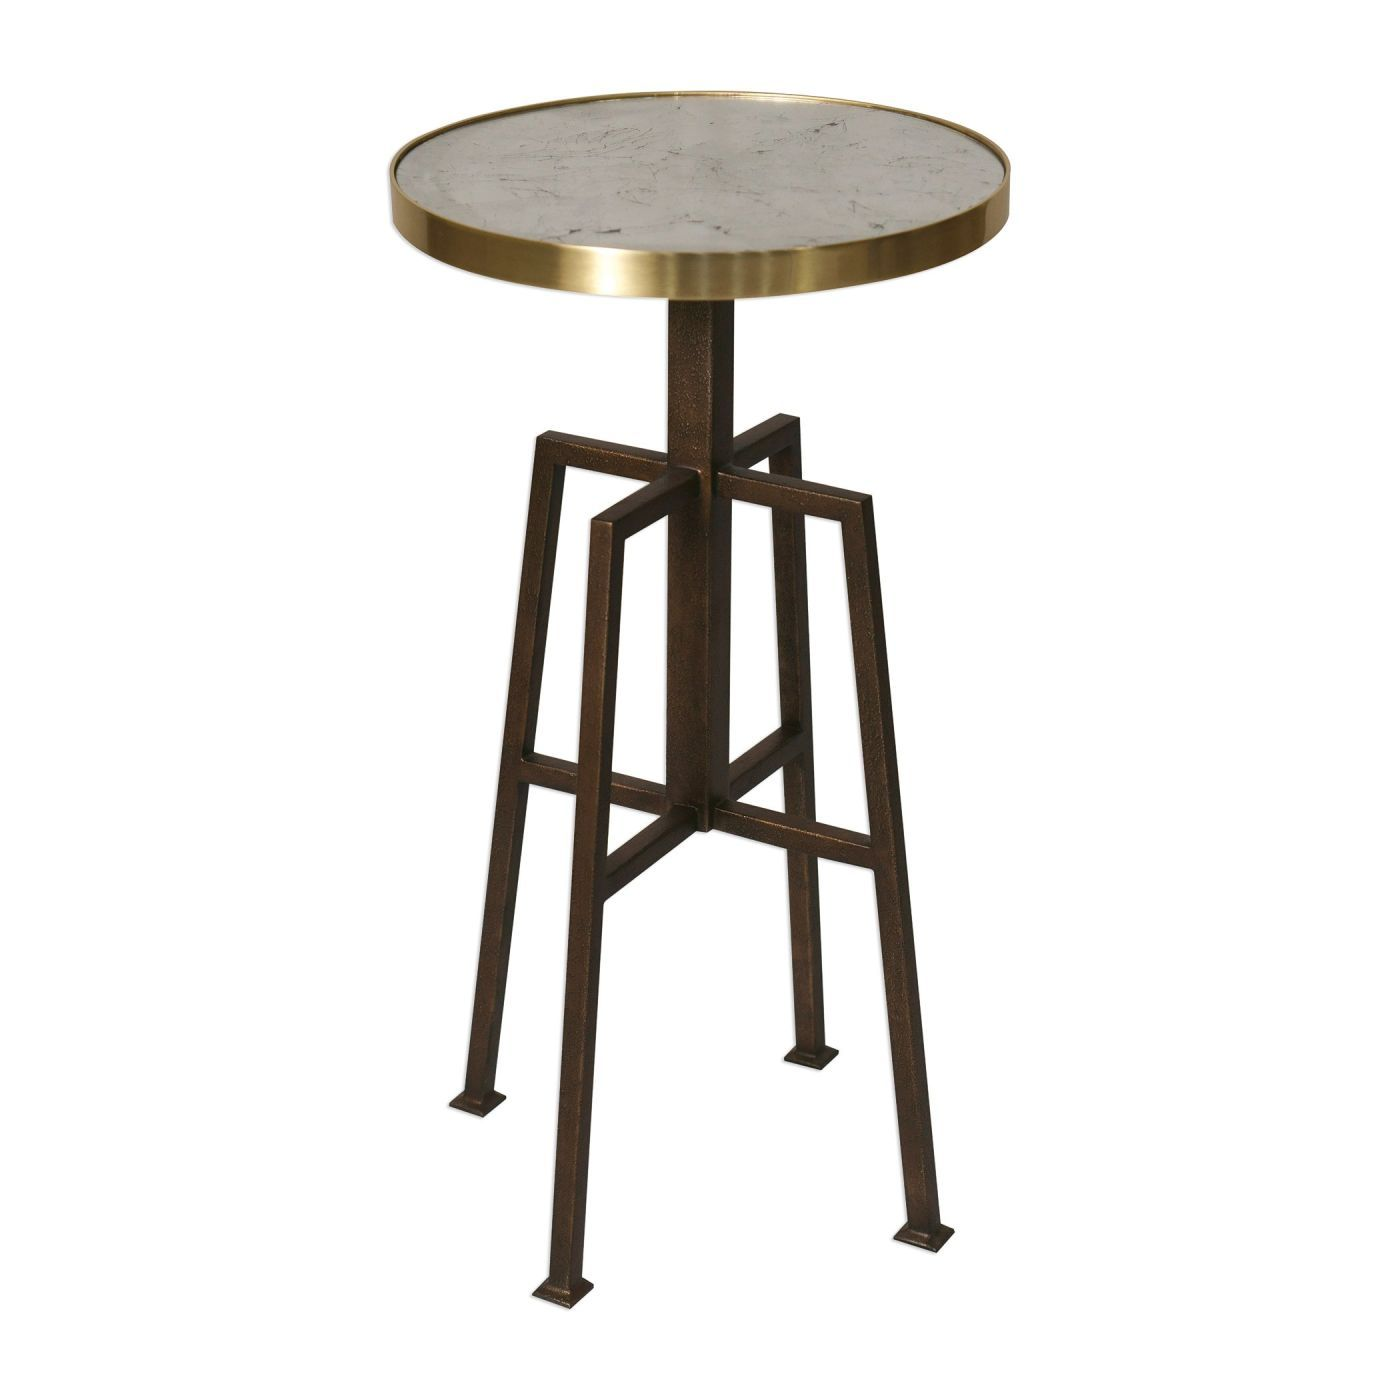 amazing uttermost utt gisele round accent table side tables textured aged bronze outdoor bistro with umbrella hole timber cherry mission end bar height dining room sets marble